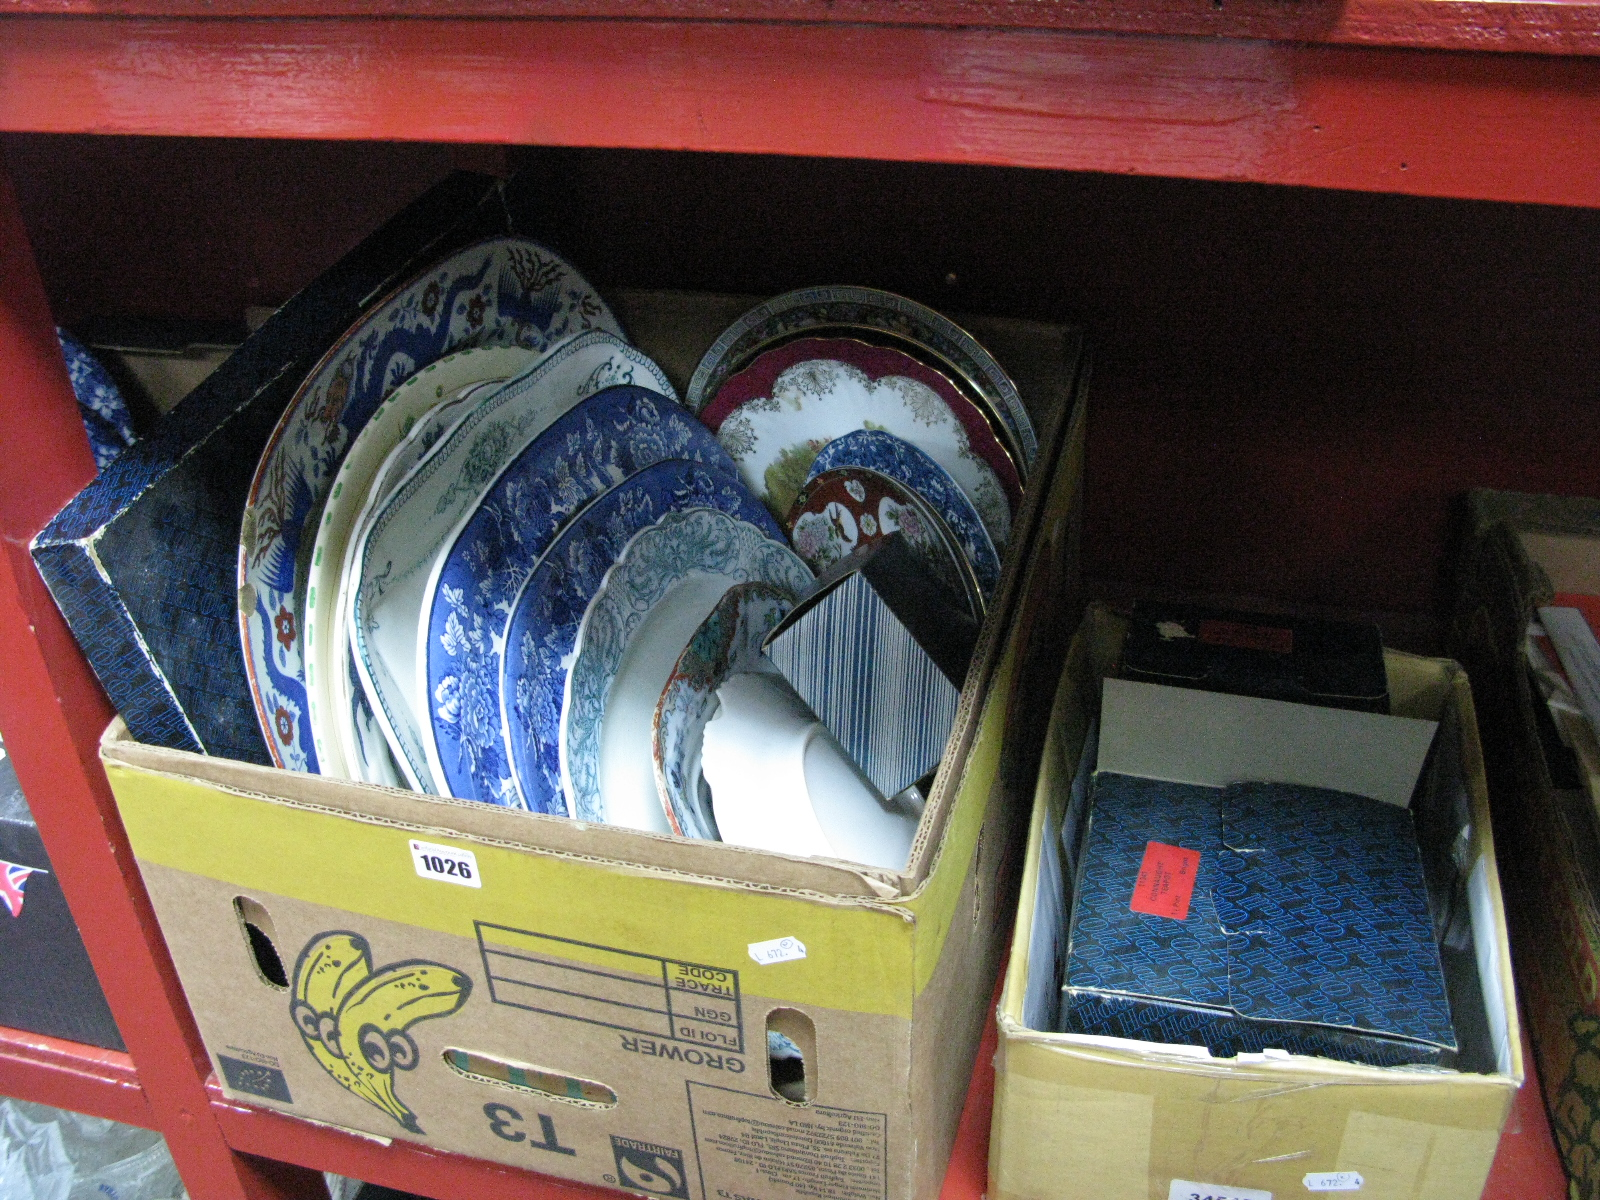 Lot 1026 - Old Hall Stainless Steel Ware, in original boxes; a quantity of meat and dinner plates to include